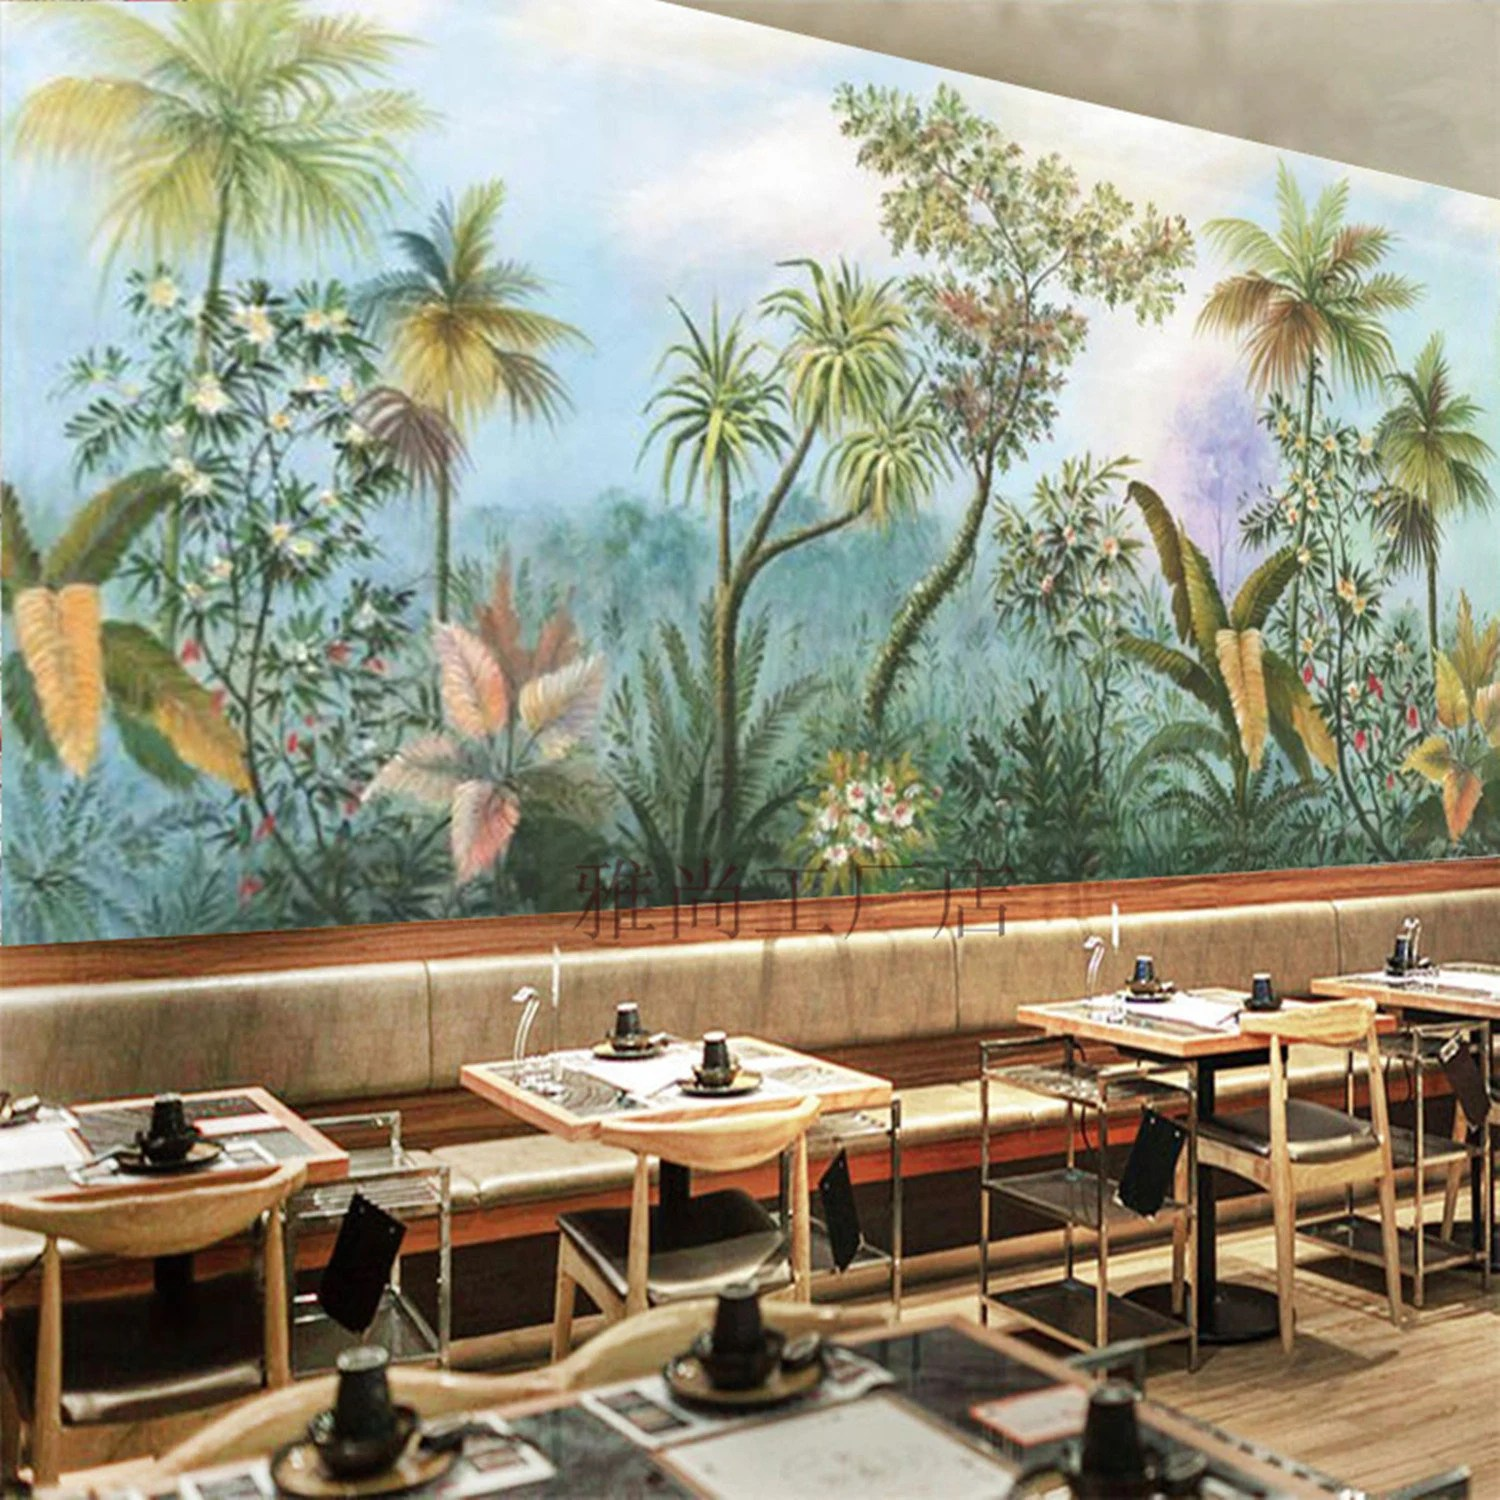 Wallpaper Murals For Bathrooms Tropical Rainforest Wallpaper Wall Mural Jungle Frorest Trees Scenic Wall Mural Living Room Bedroom Wallpaper Wall Murals